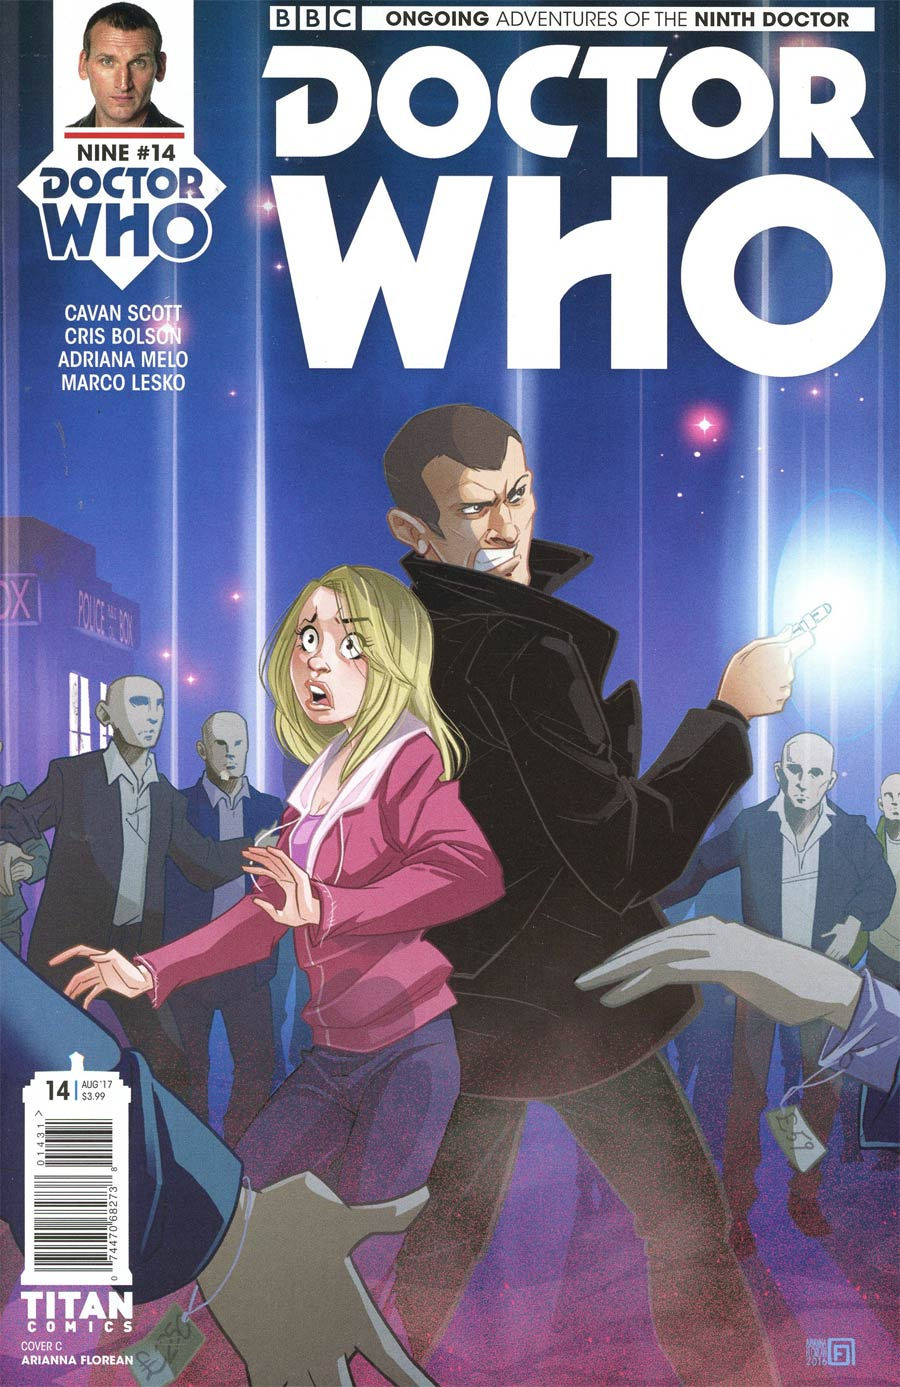 Doctor Who 9th Doctor Vol 2 #14 Cover C Variant Arianna Florean Cover